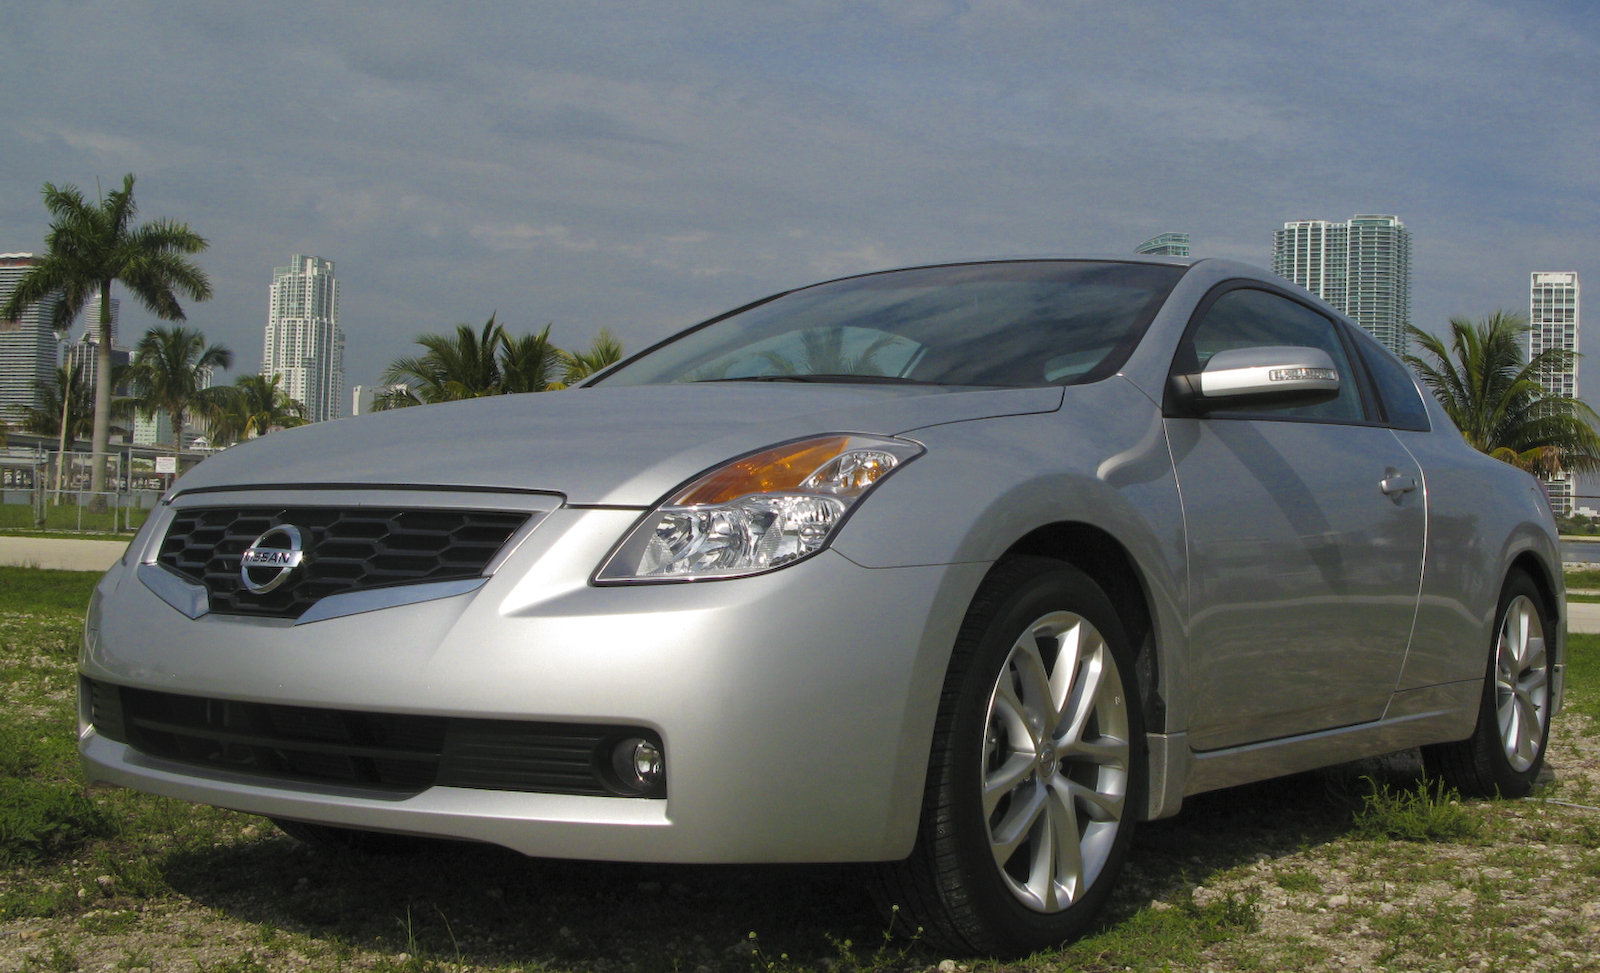 2009 nissan altima coupe 3 5 se picture 303336 car. Black Bedroom Furniture Sets. Home Design Ideas